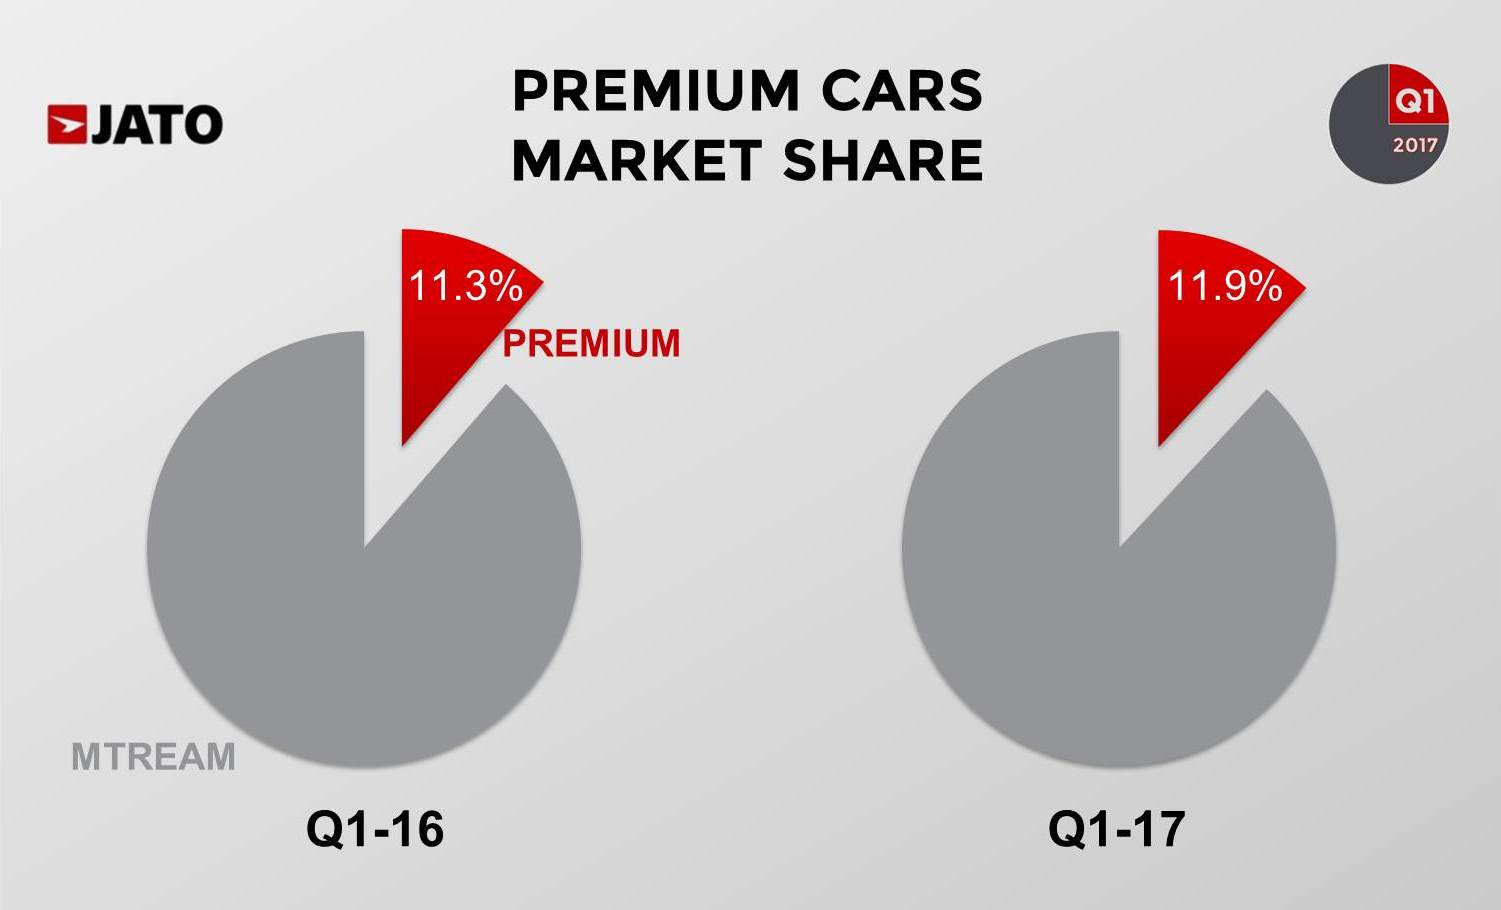 Global Vehicle Sales Up By 4 7 In Q1 17 With Renault Nissan Hitting